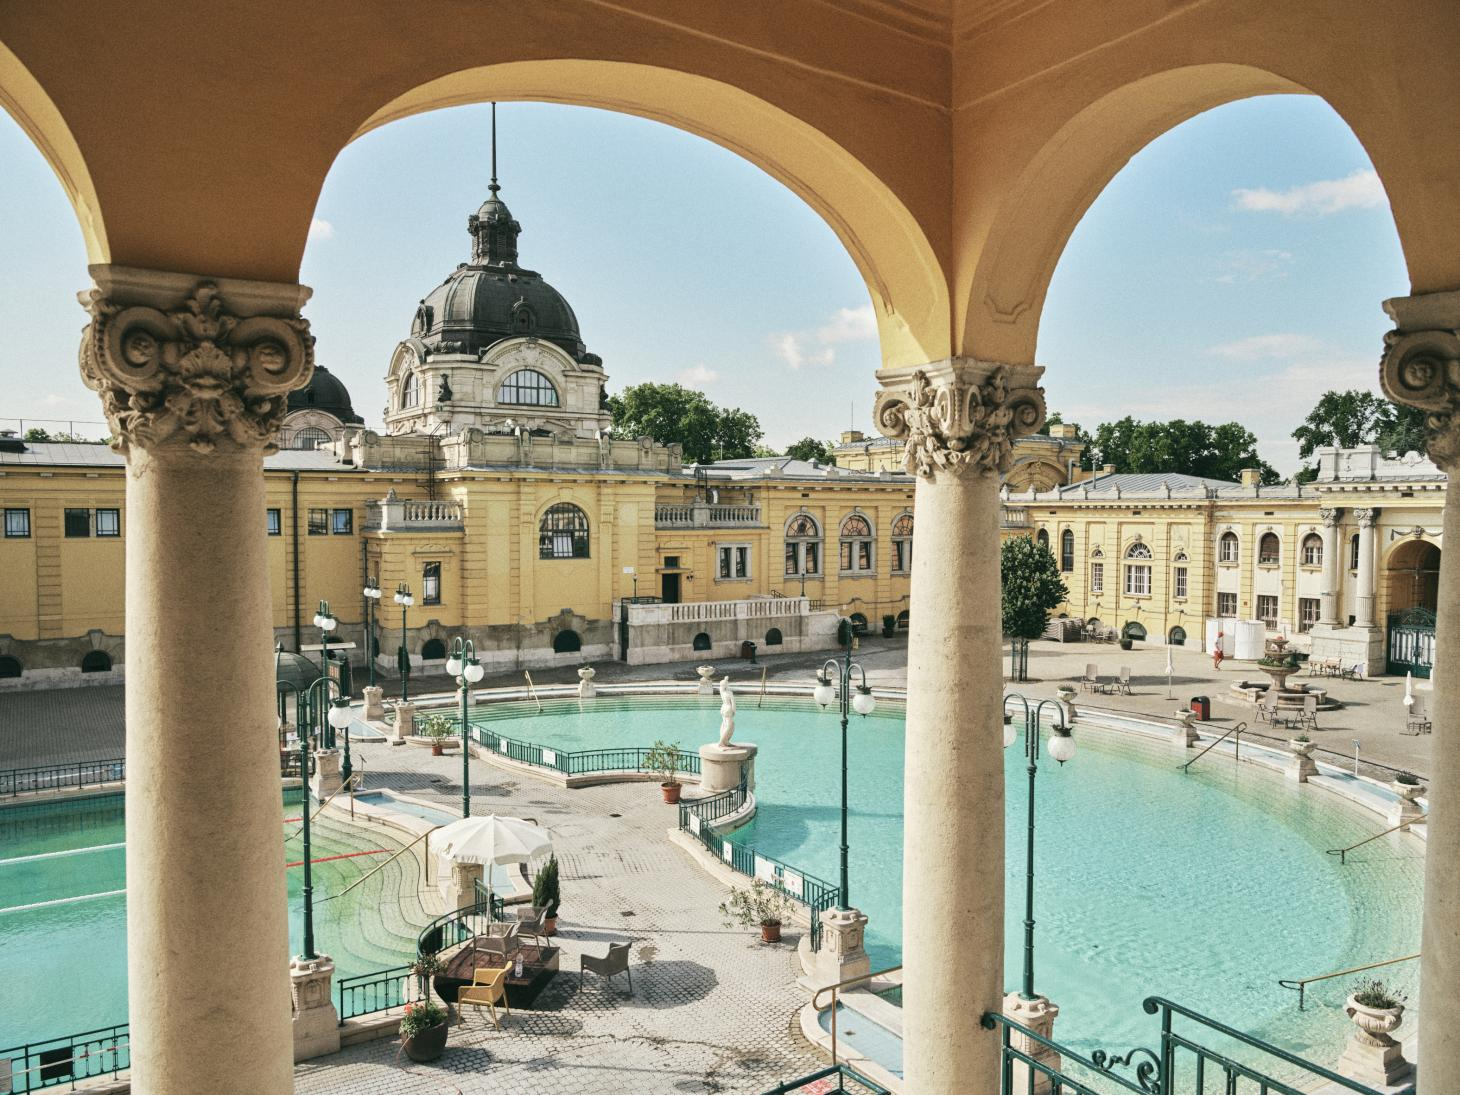 The Szechenyi Baths in Budapest built in 1913